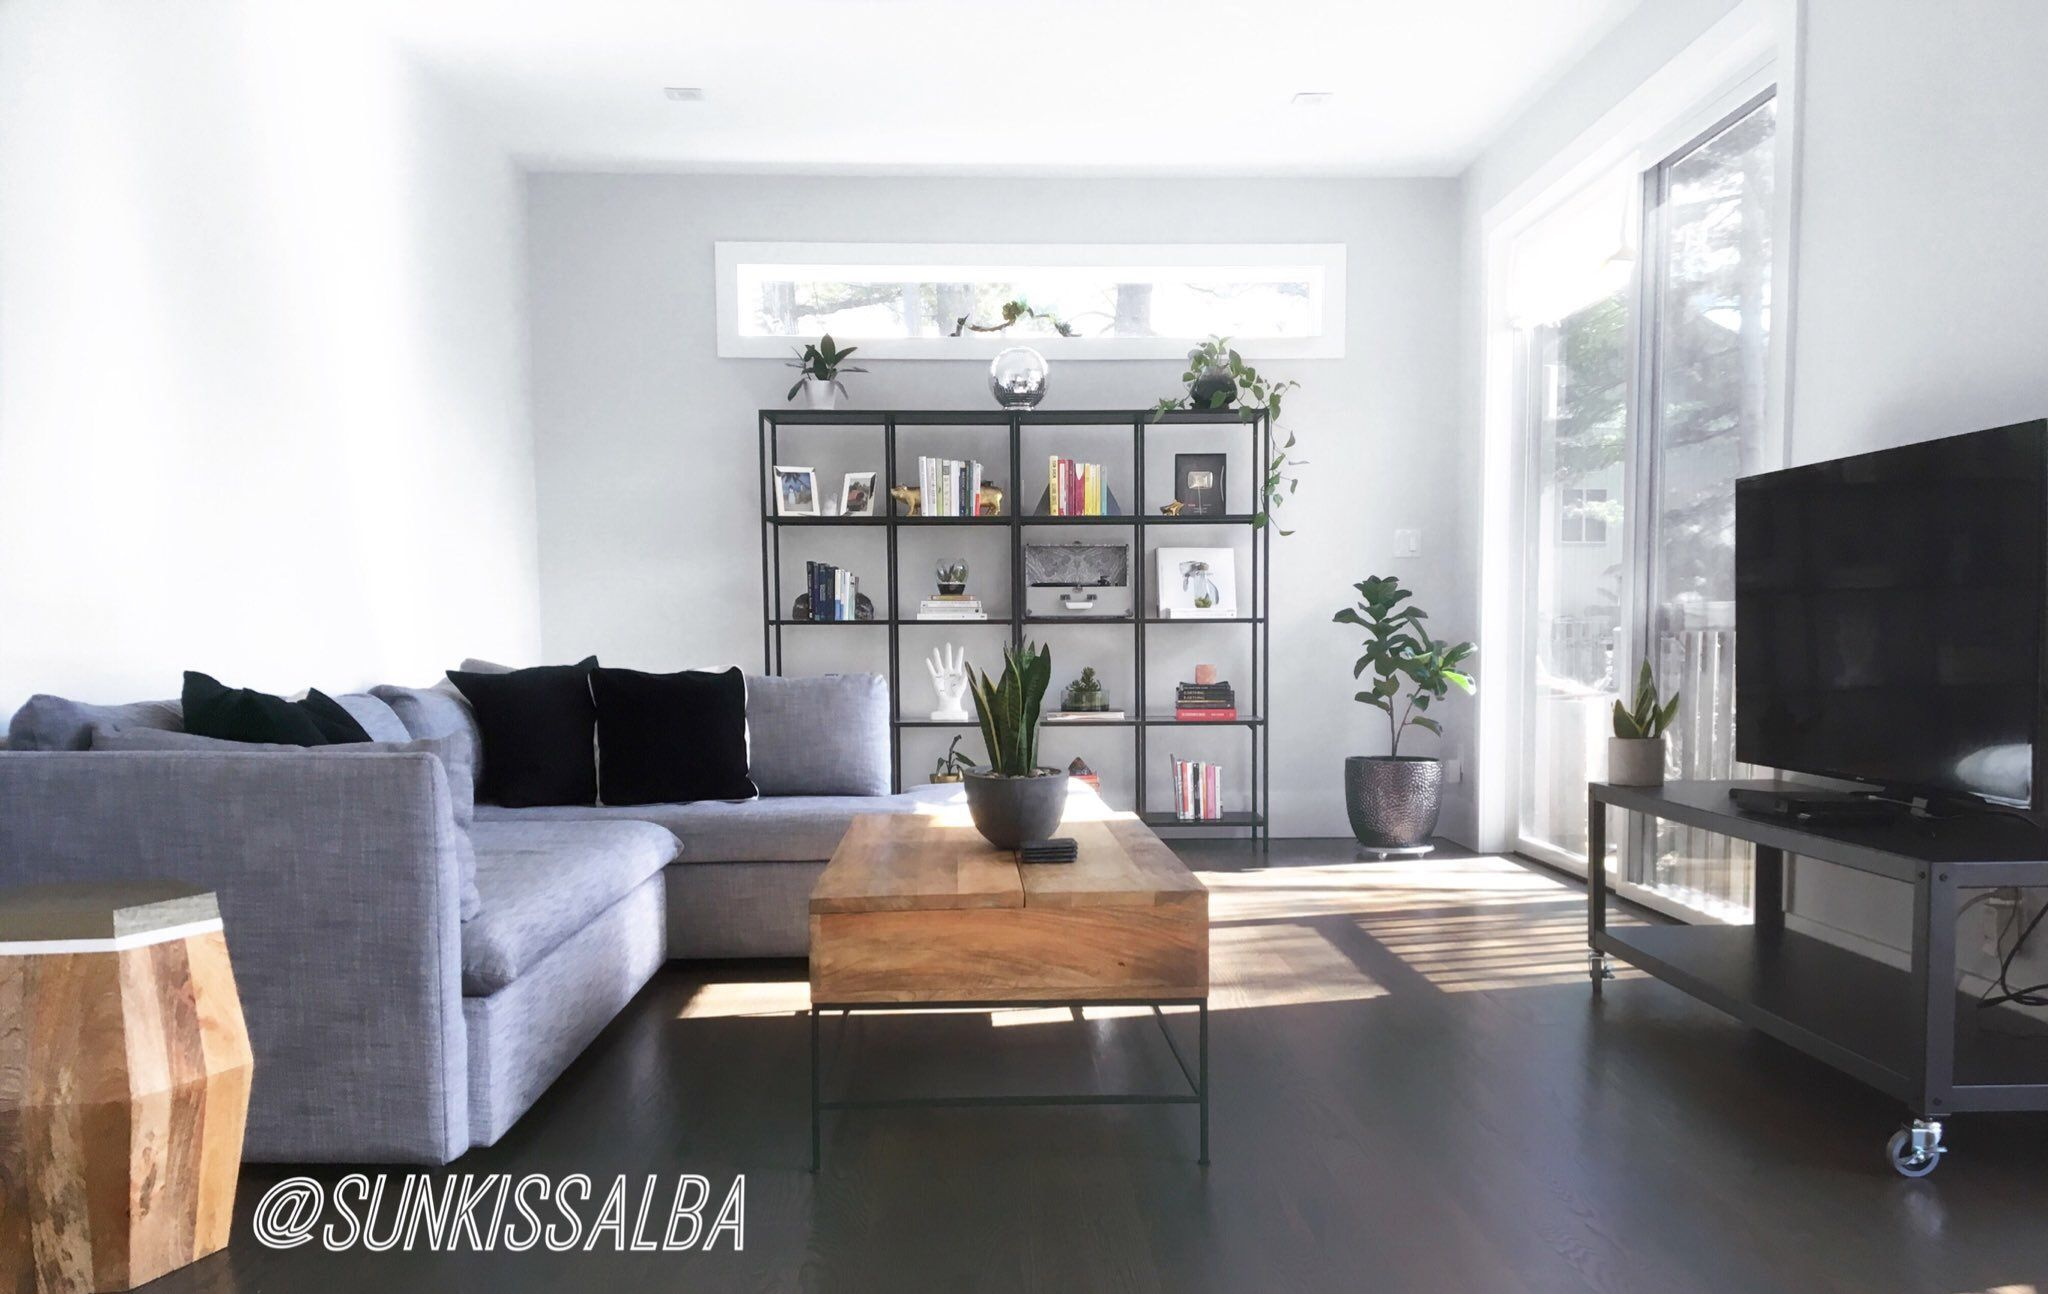 Living Room Aesthetics Modern Industrial And Wood Combination With A Clean White And Minimalistic Lo Living Room With Fireplace Living Room Home Decor Styles